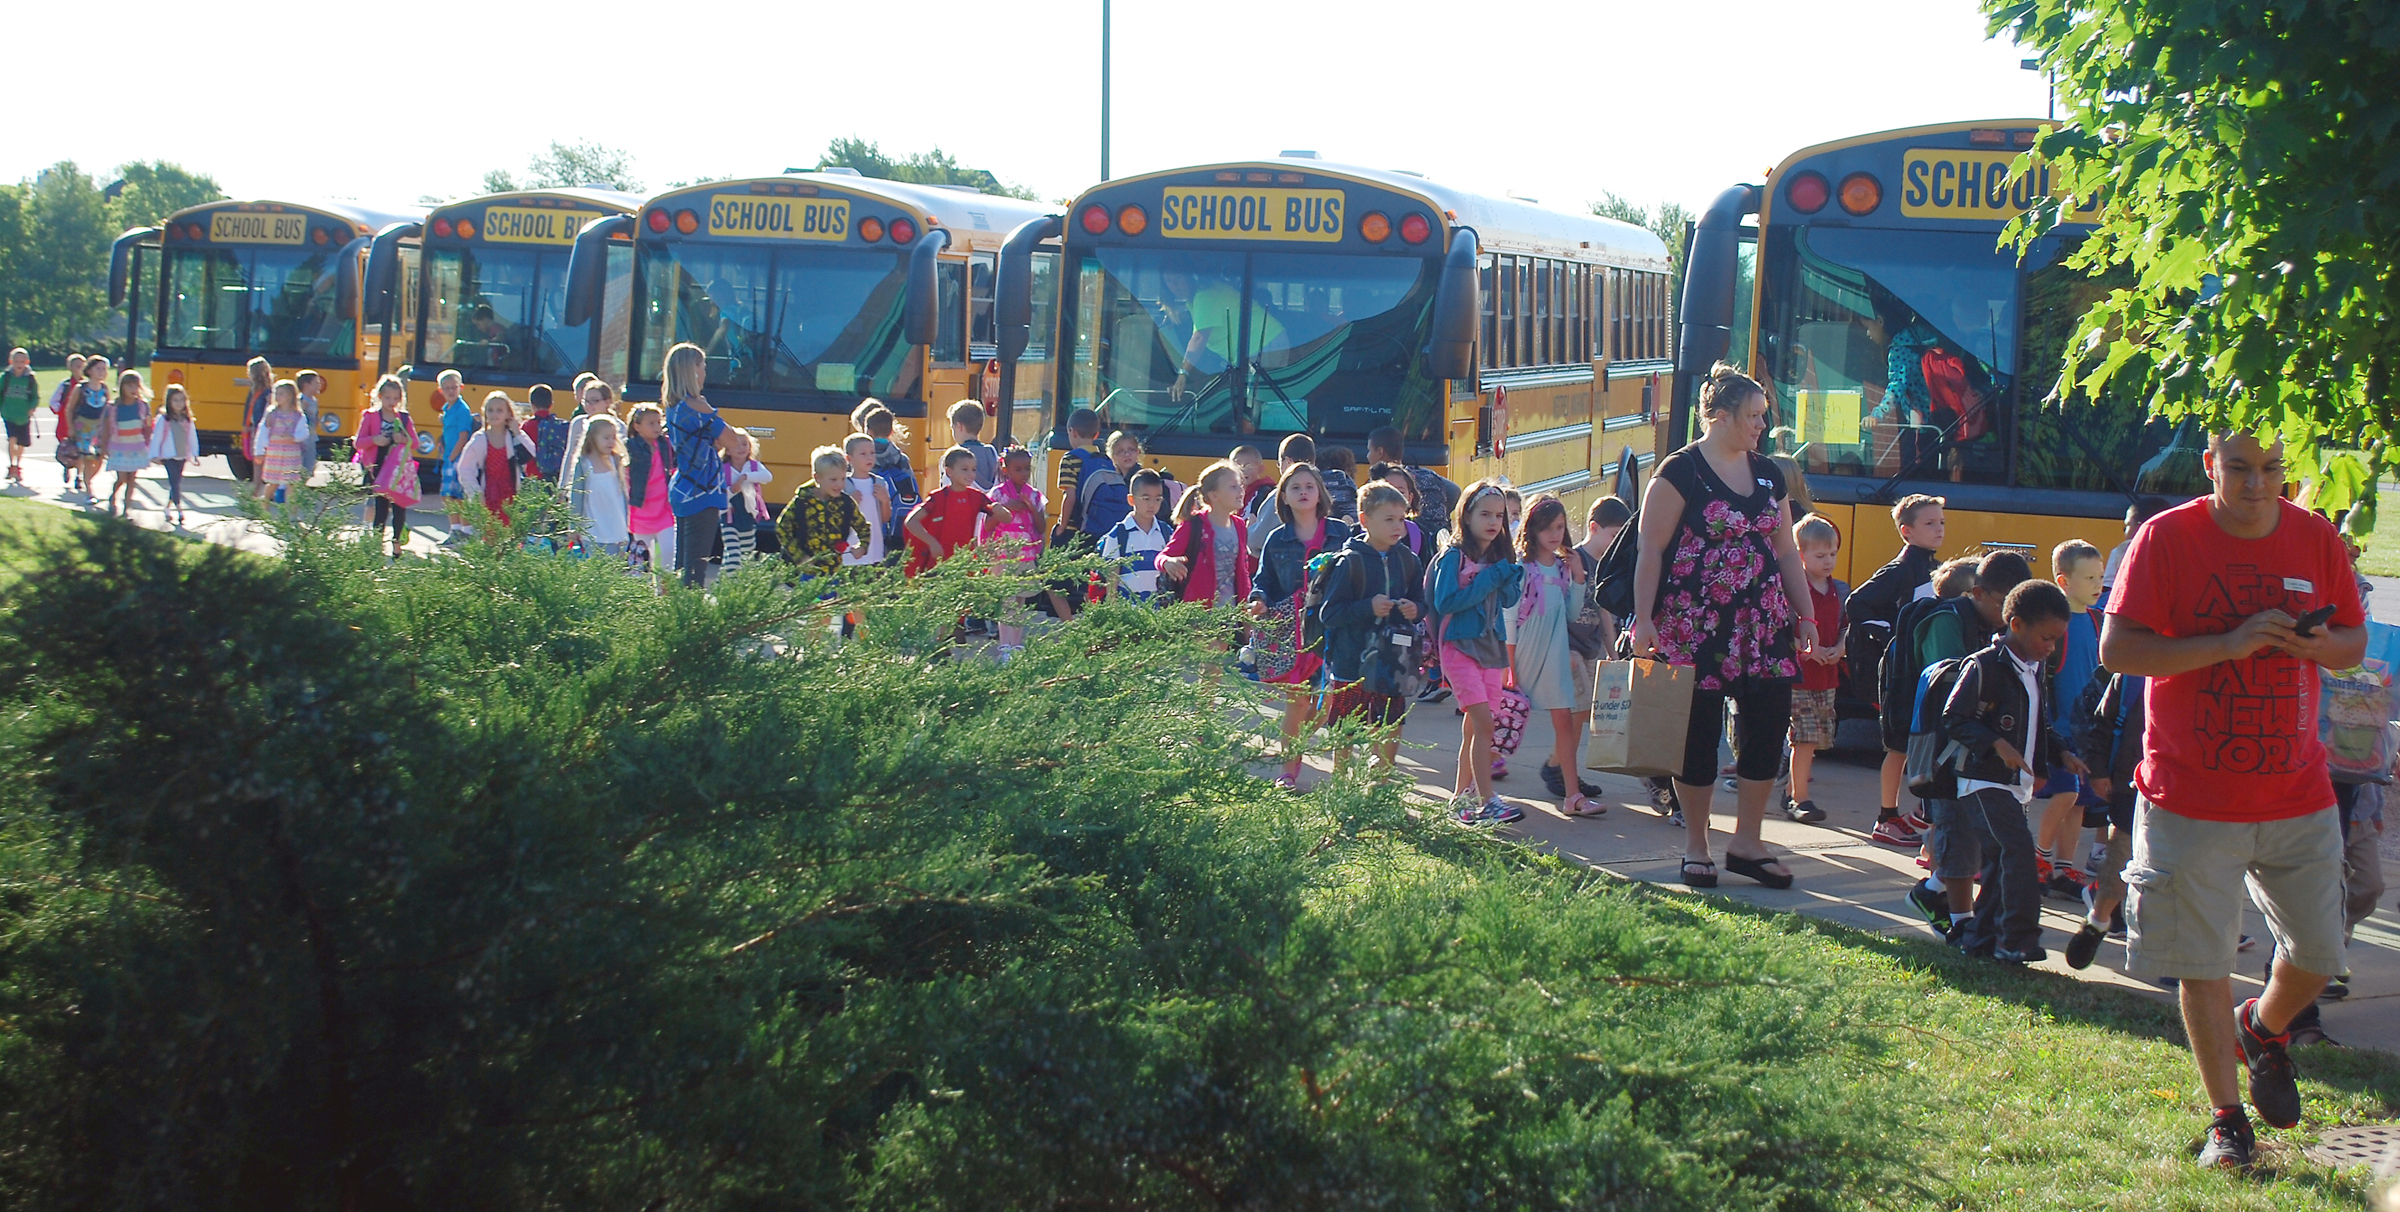 Students exit buses and enter Carey Ridge Elementary on the first day of school last year. (file photo)